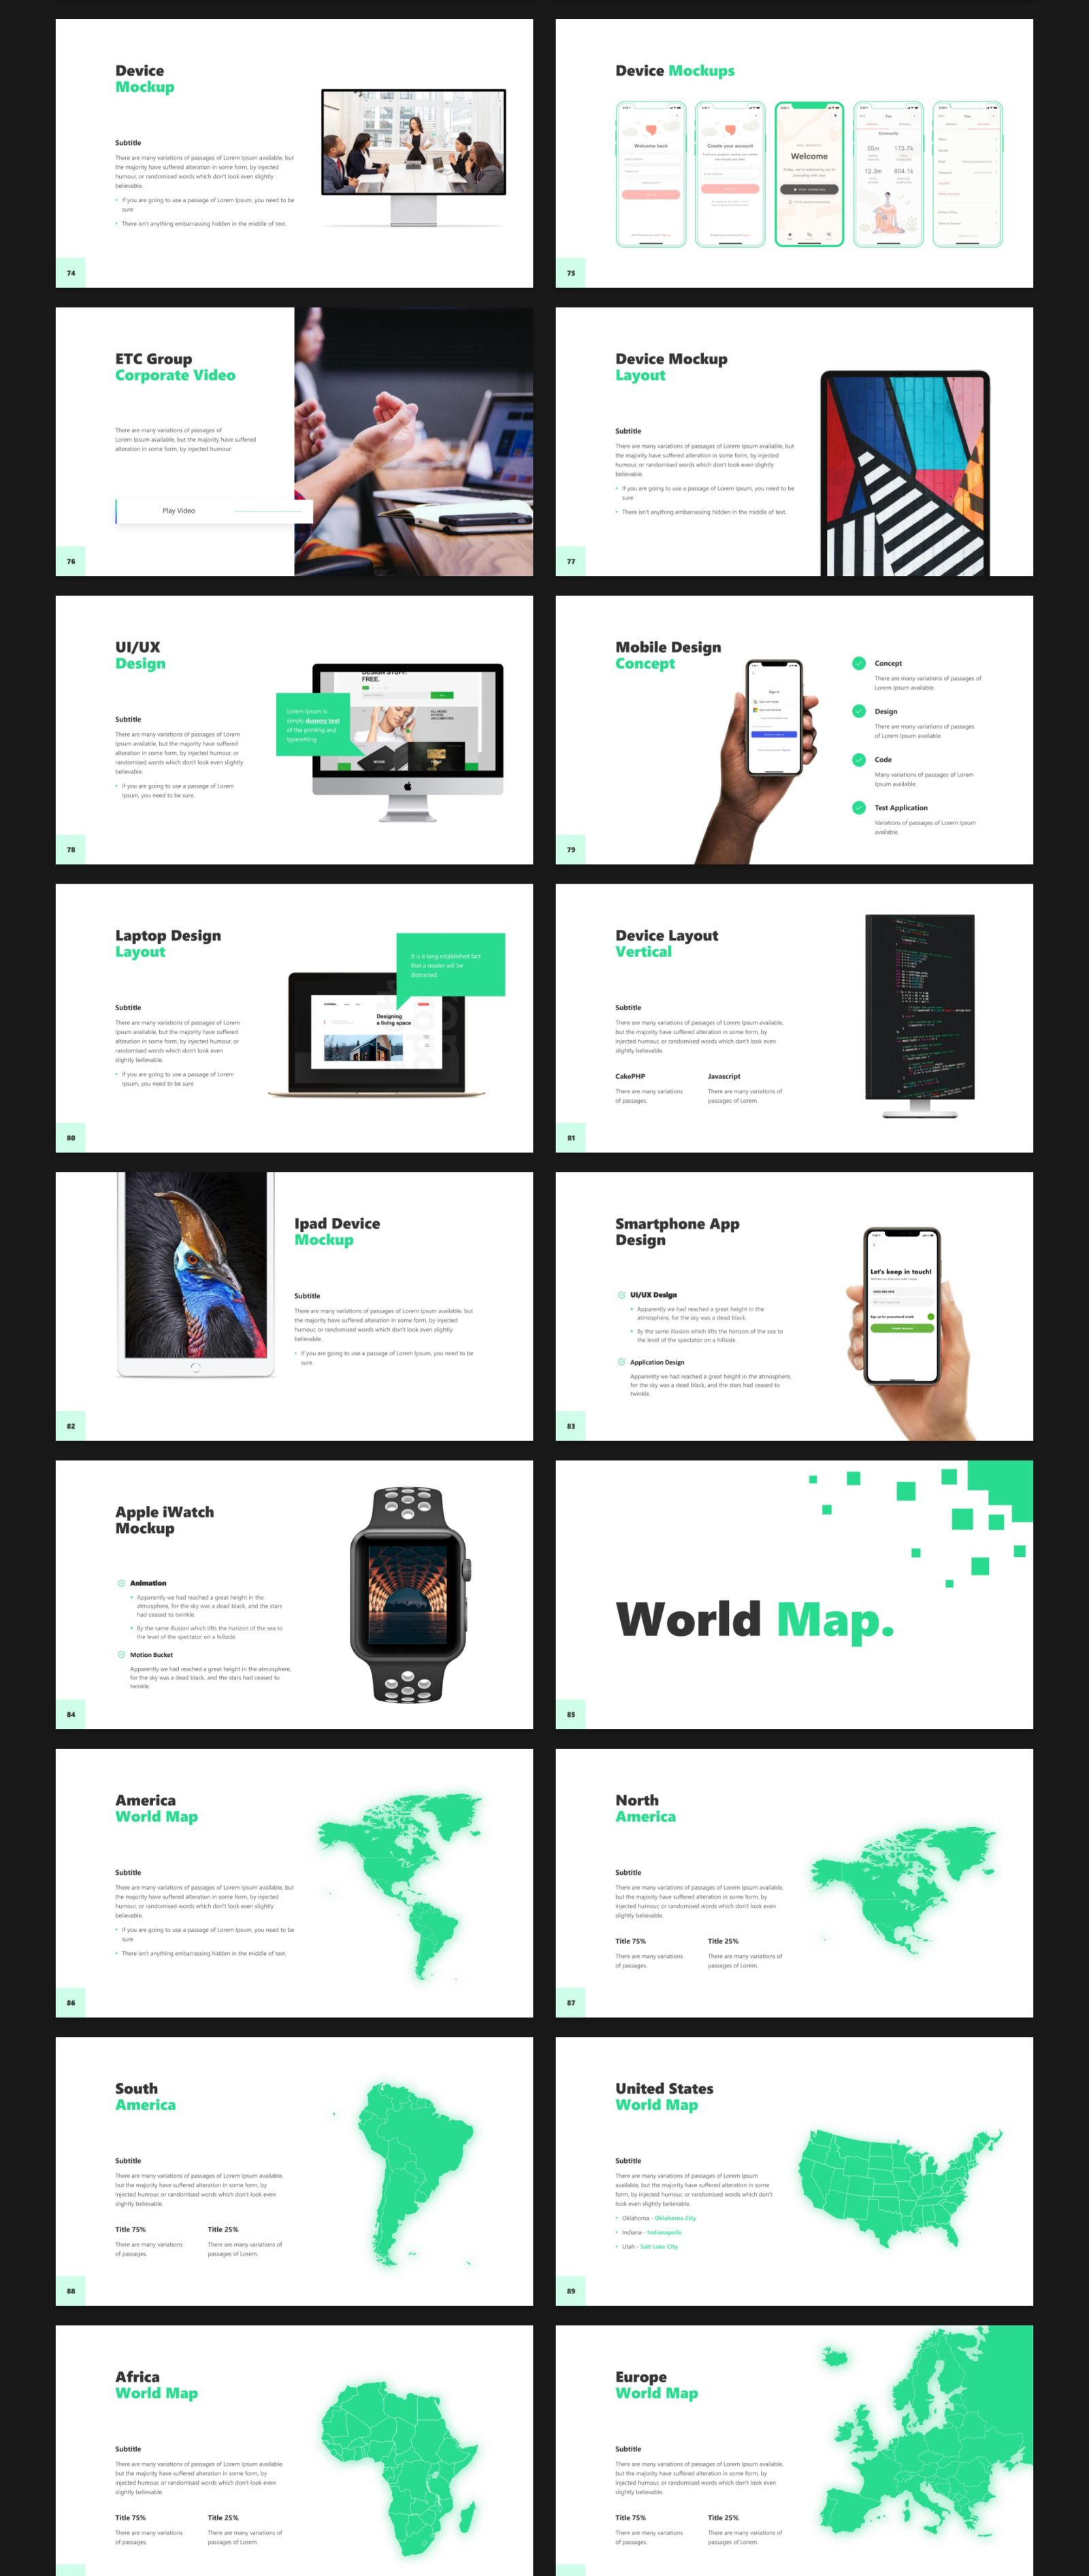 Business 2020 - Smooth Animated PowerPoint Template in Presentation Templates on Yellow Images Creative Store